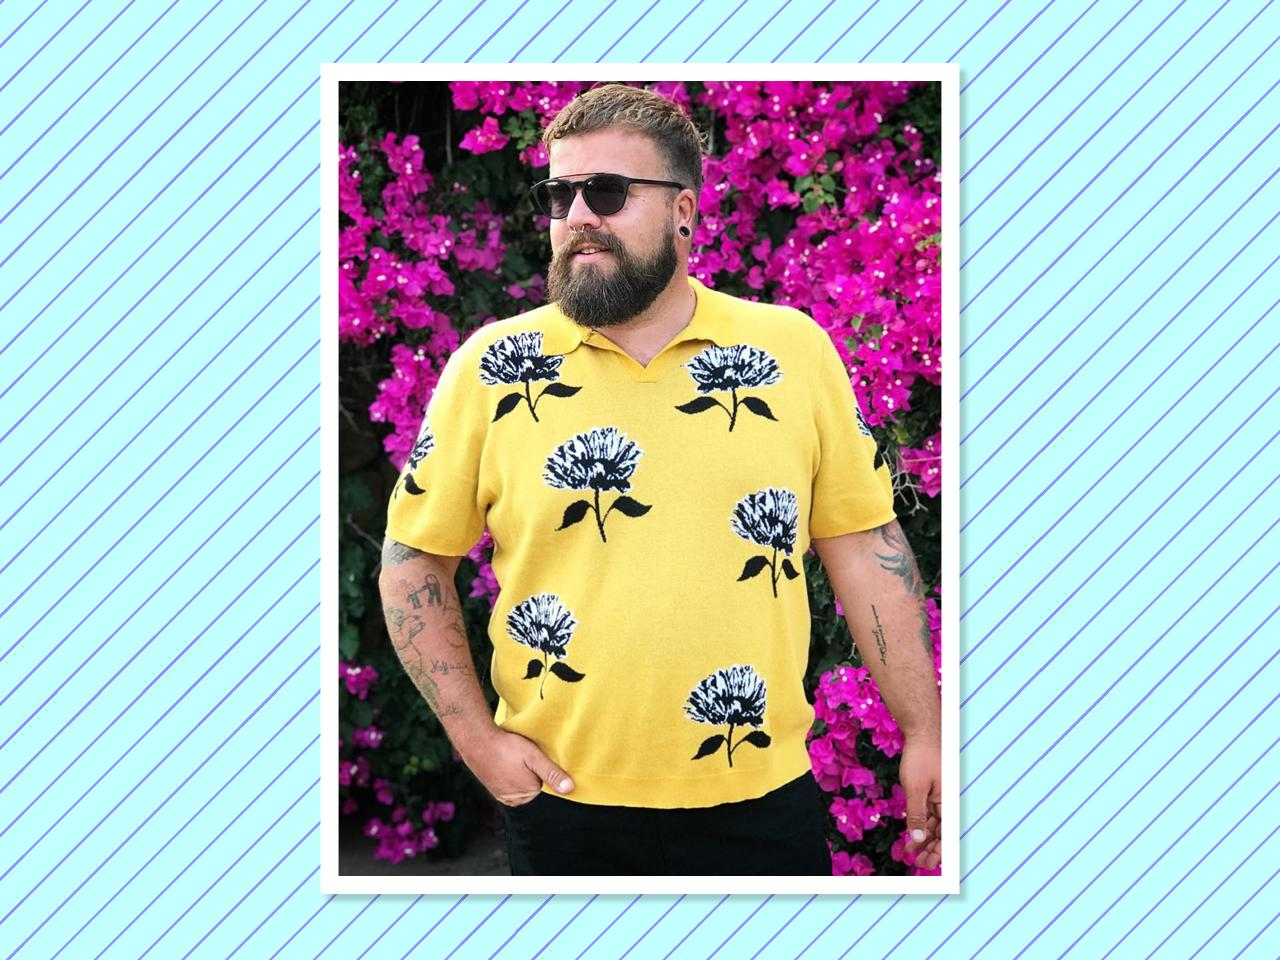 """<p></p><p>Hailing from Germany, <a rel=""""nofollow"""" href=""""https://www.instagram.com/extra_inches_plussizeblog/"""">Fleissner</a> is always serving up relaxed, colorful looks with the perfect hipster edge. (Photo: Claus Fleissner) </p><p></p>"""